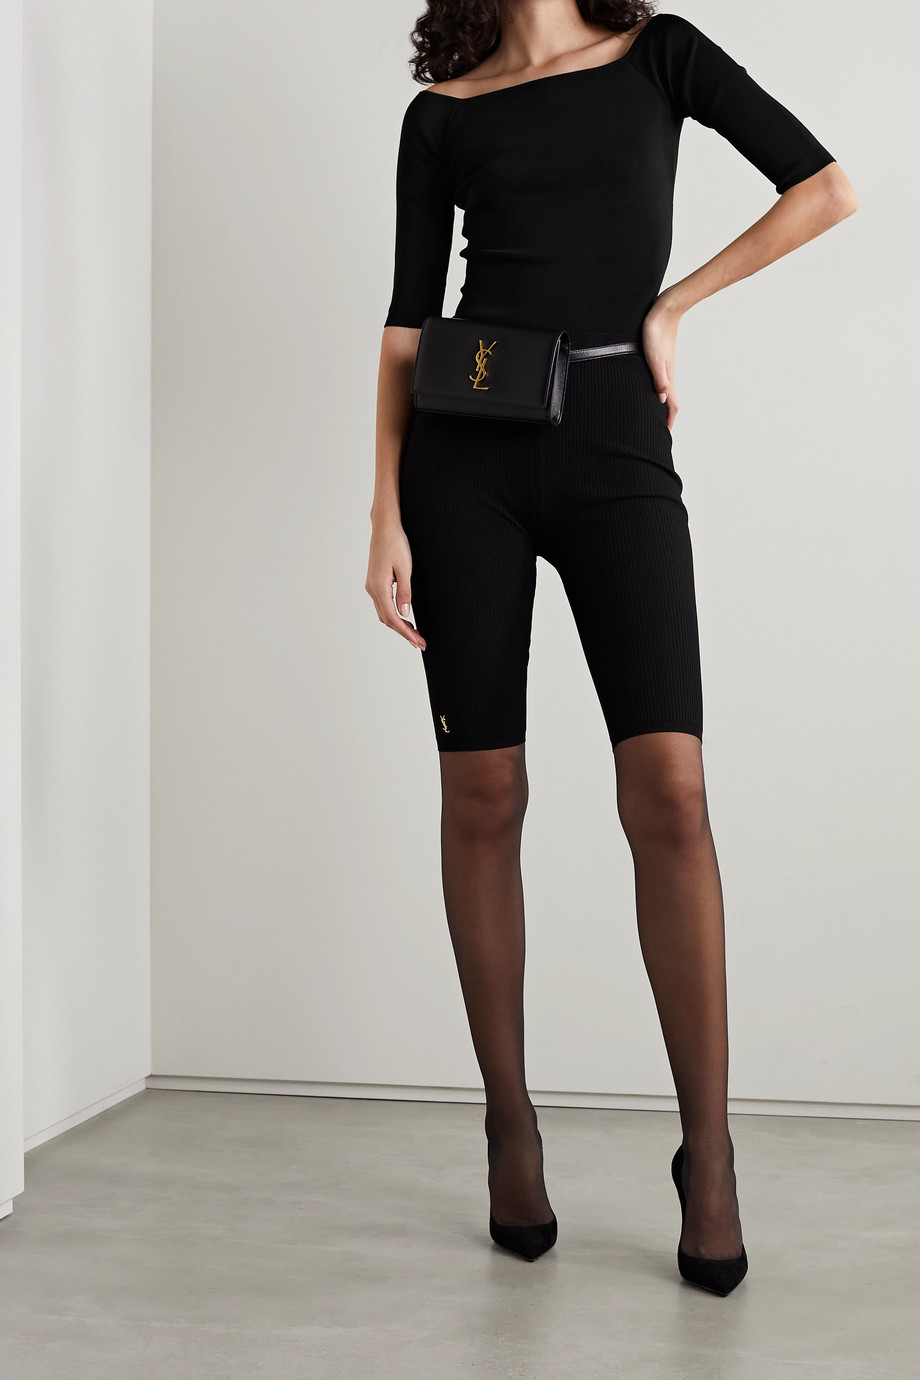 SAINT LAURENT Ribbed stretch-jersey top